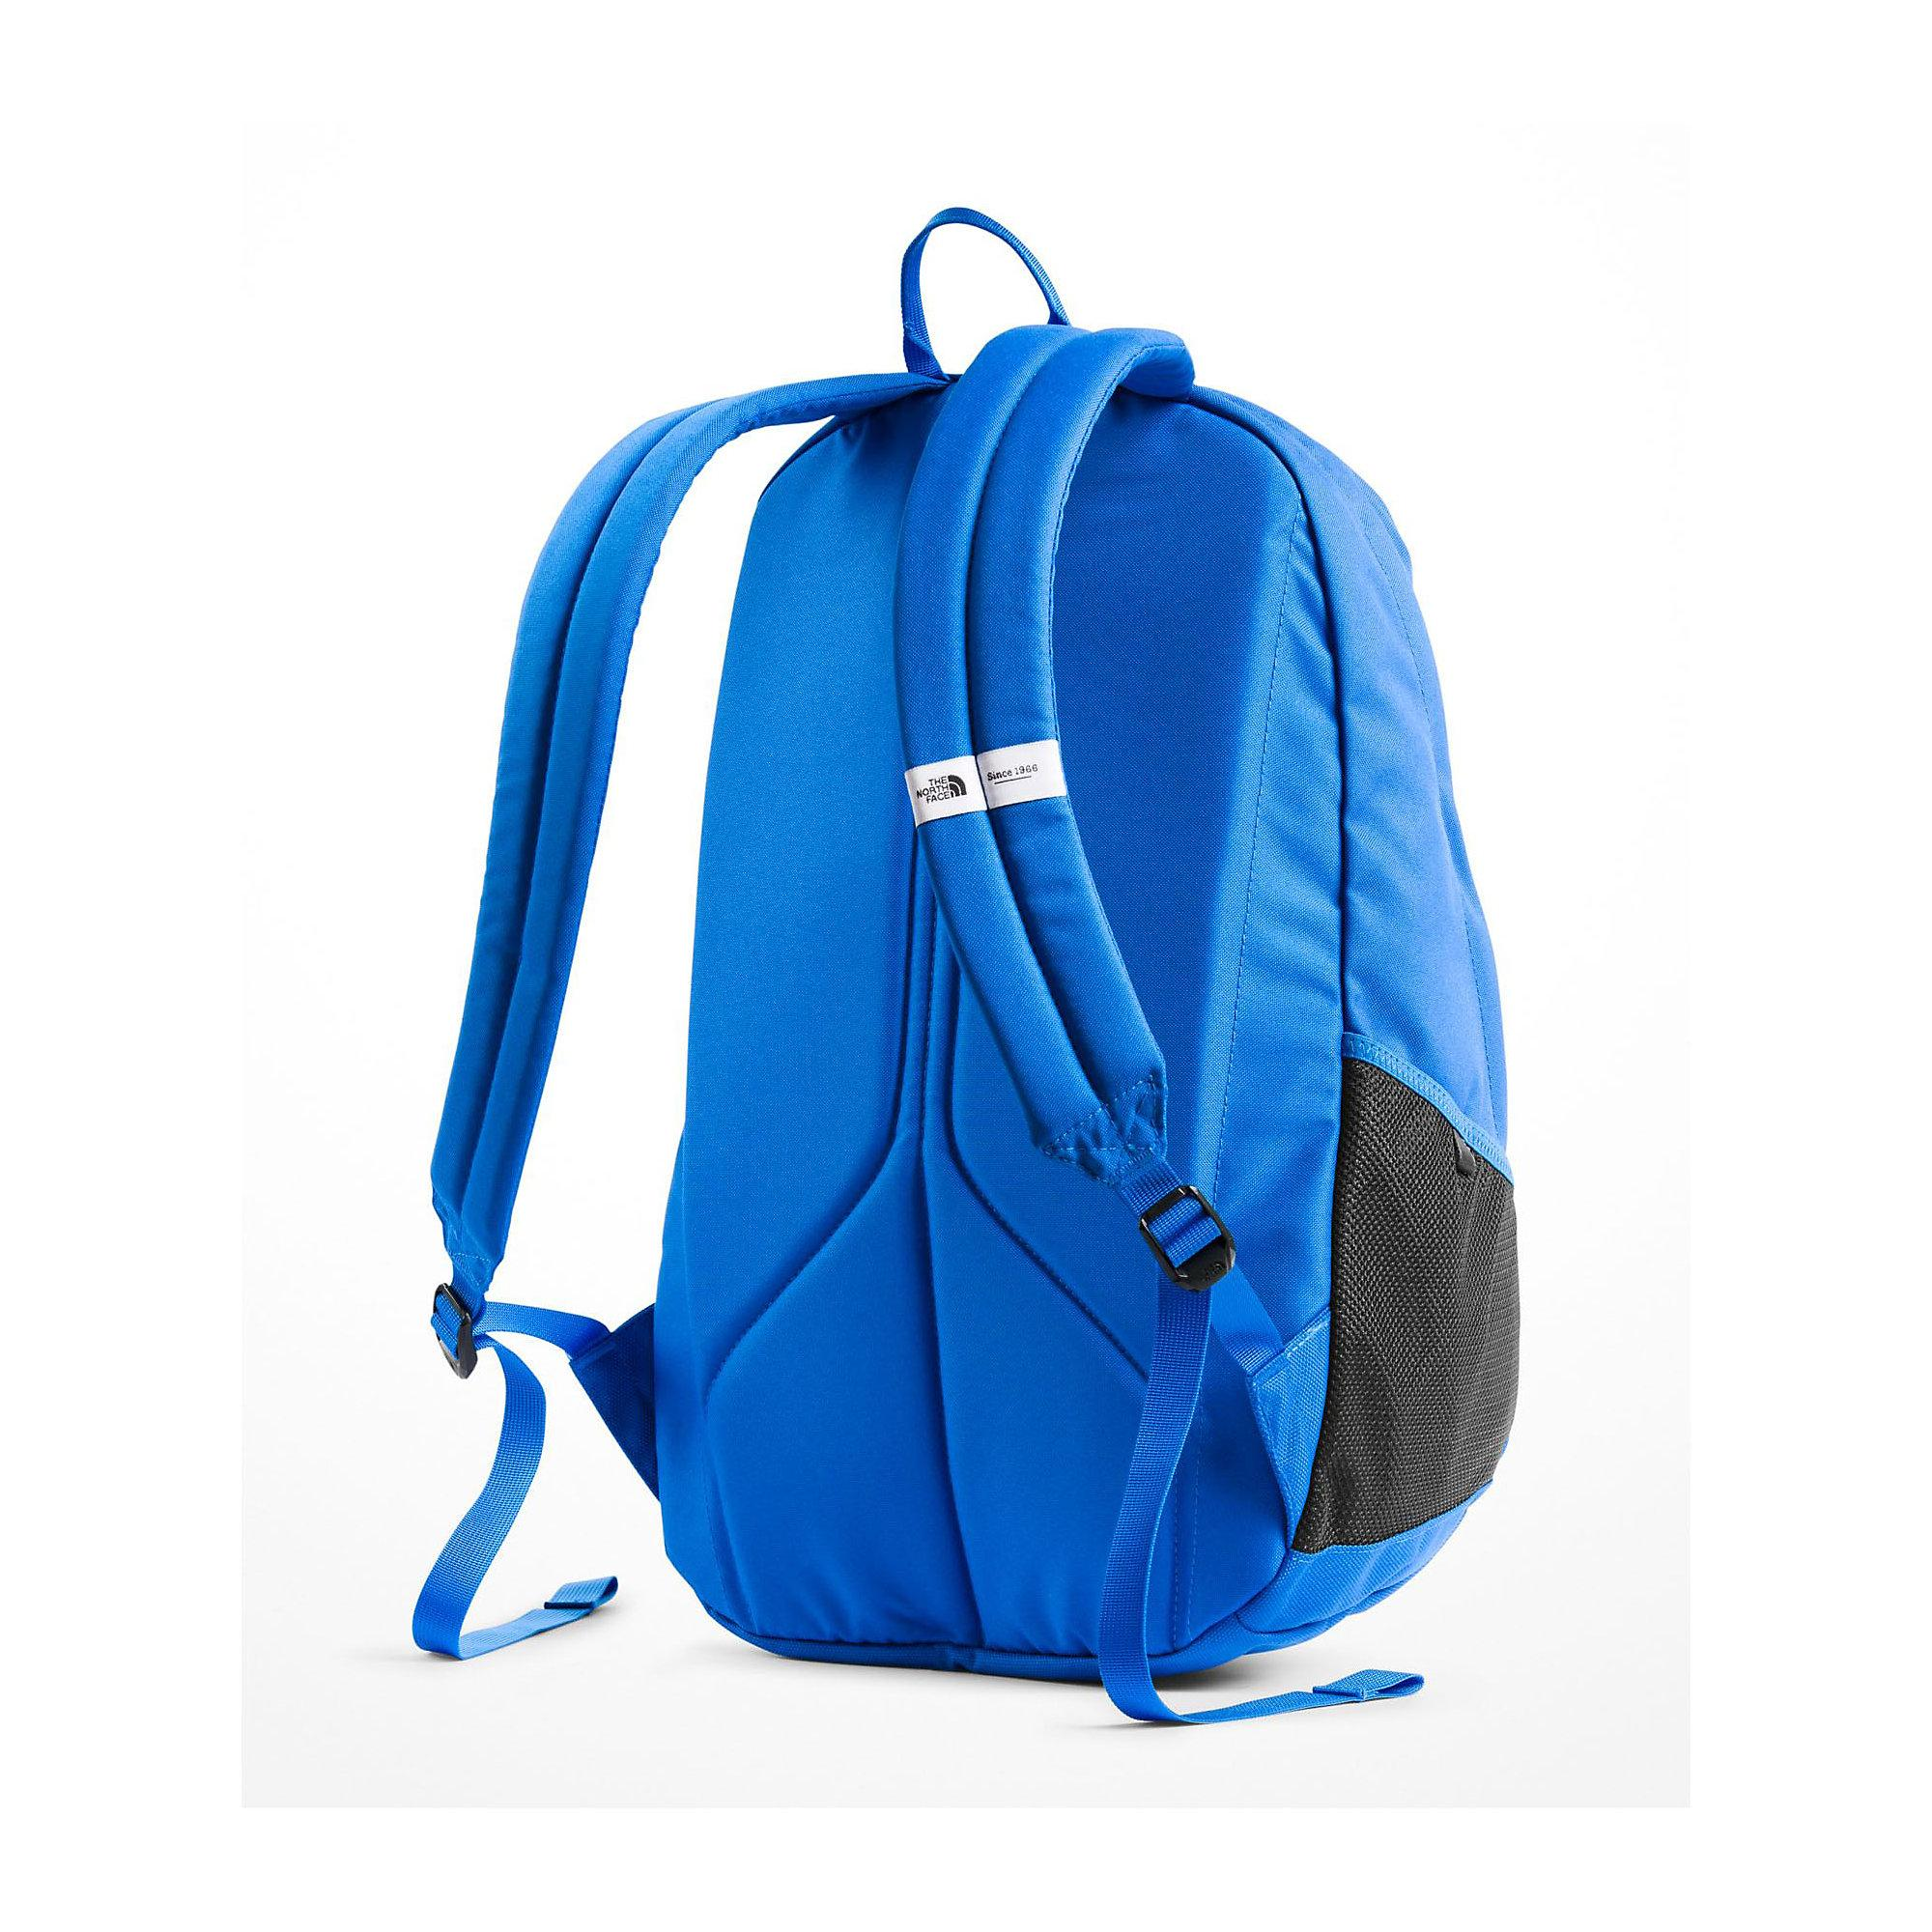 29a19d7d6 The North Face Wise Guy Backpack in Blue - Lyst